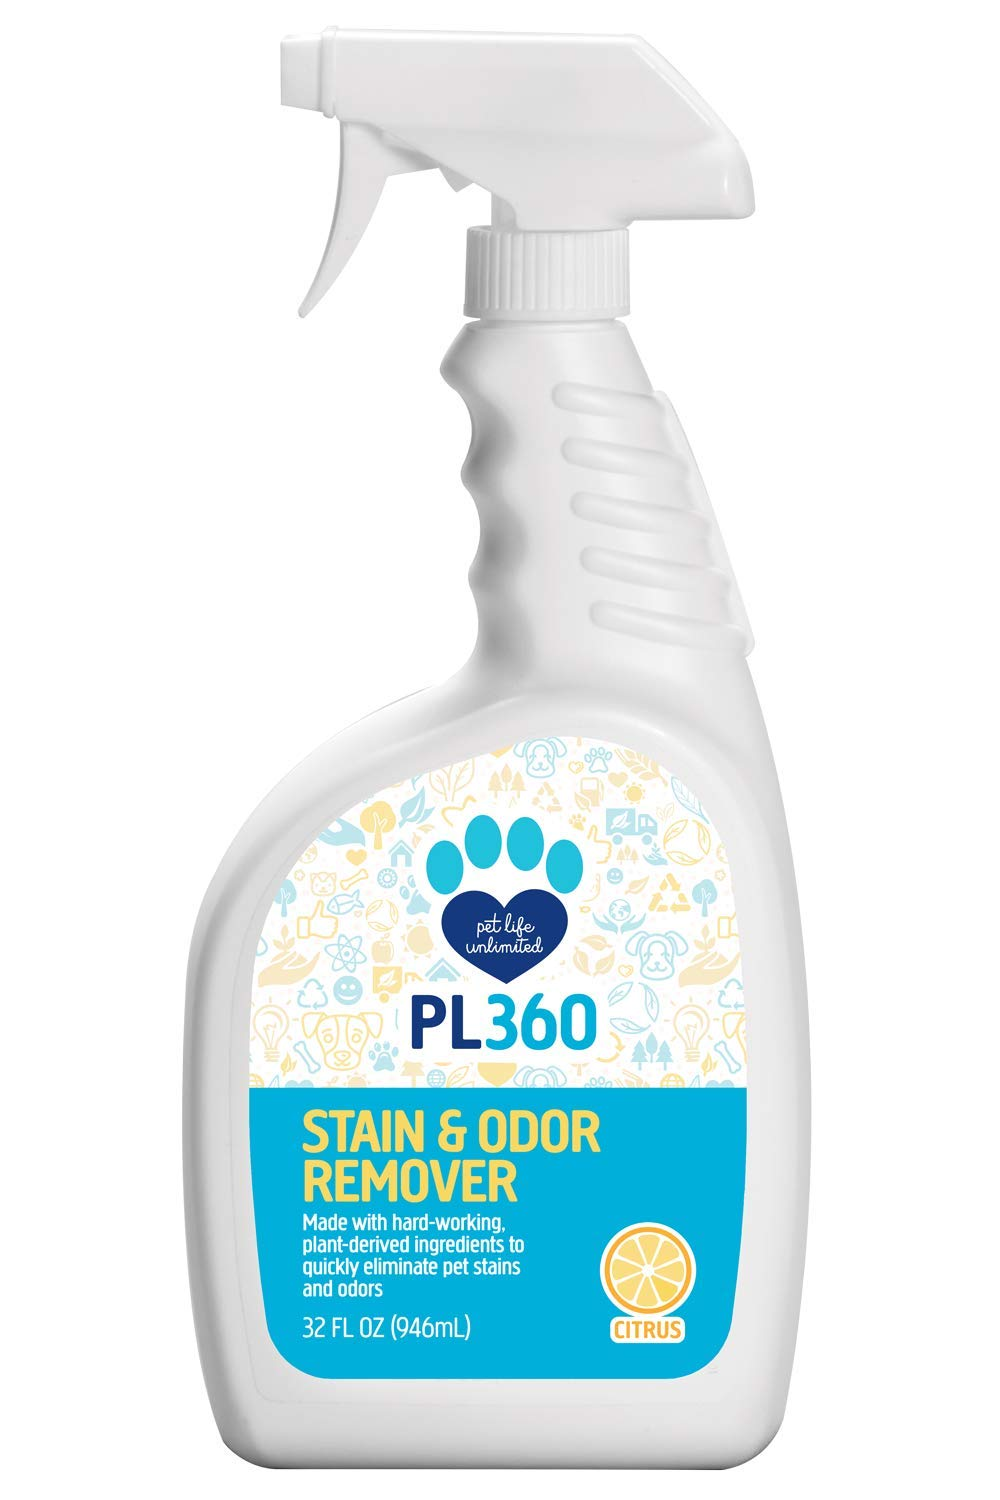 PL360 Plant-Based Pet Stain & Odor Remover, 32 Ounces (4 Pack) by PL360